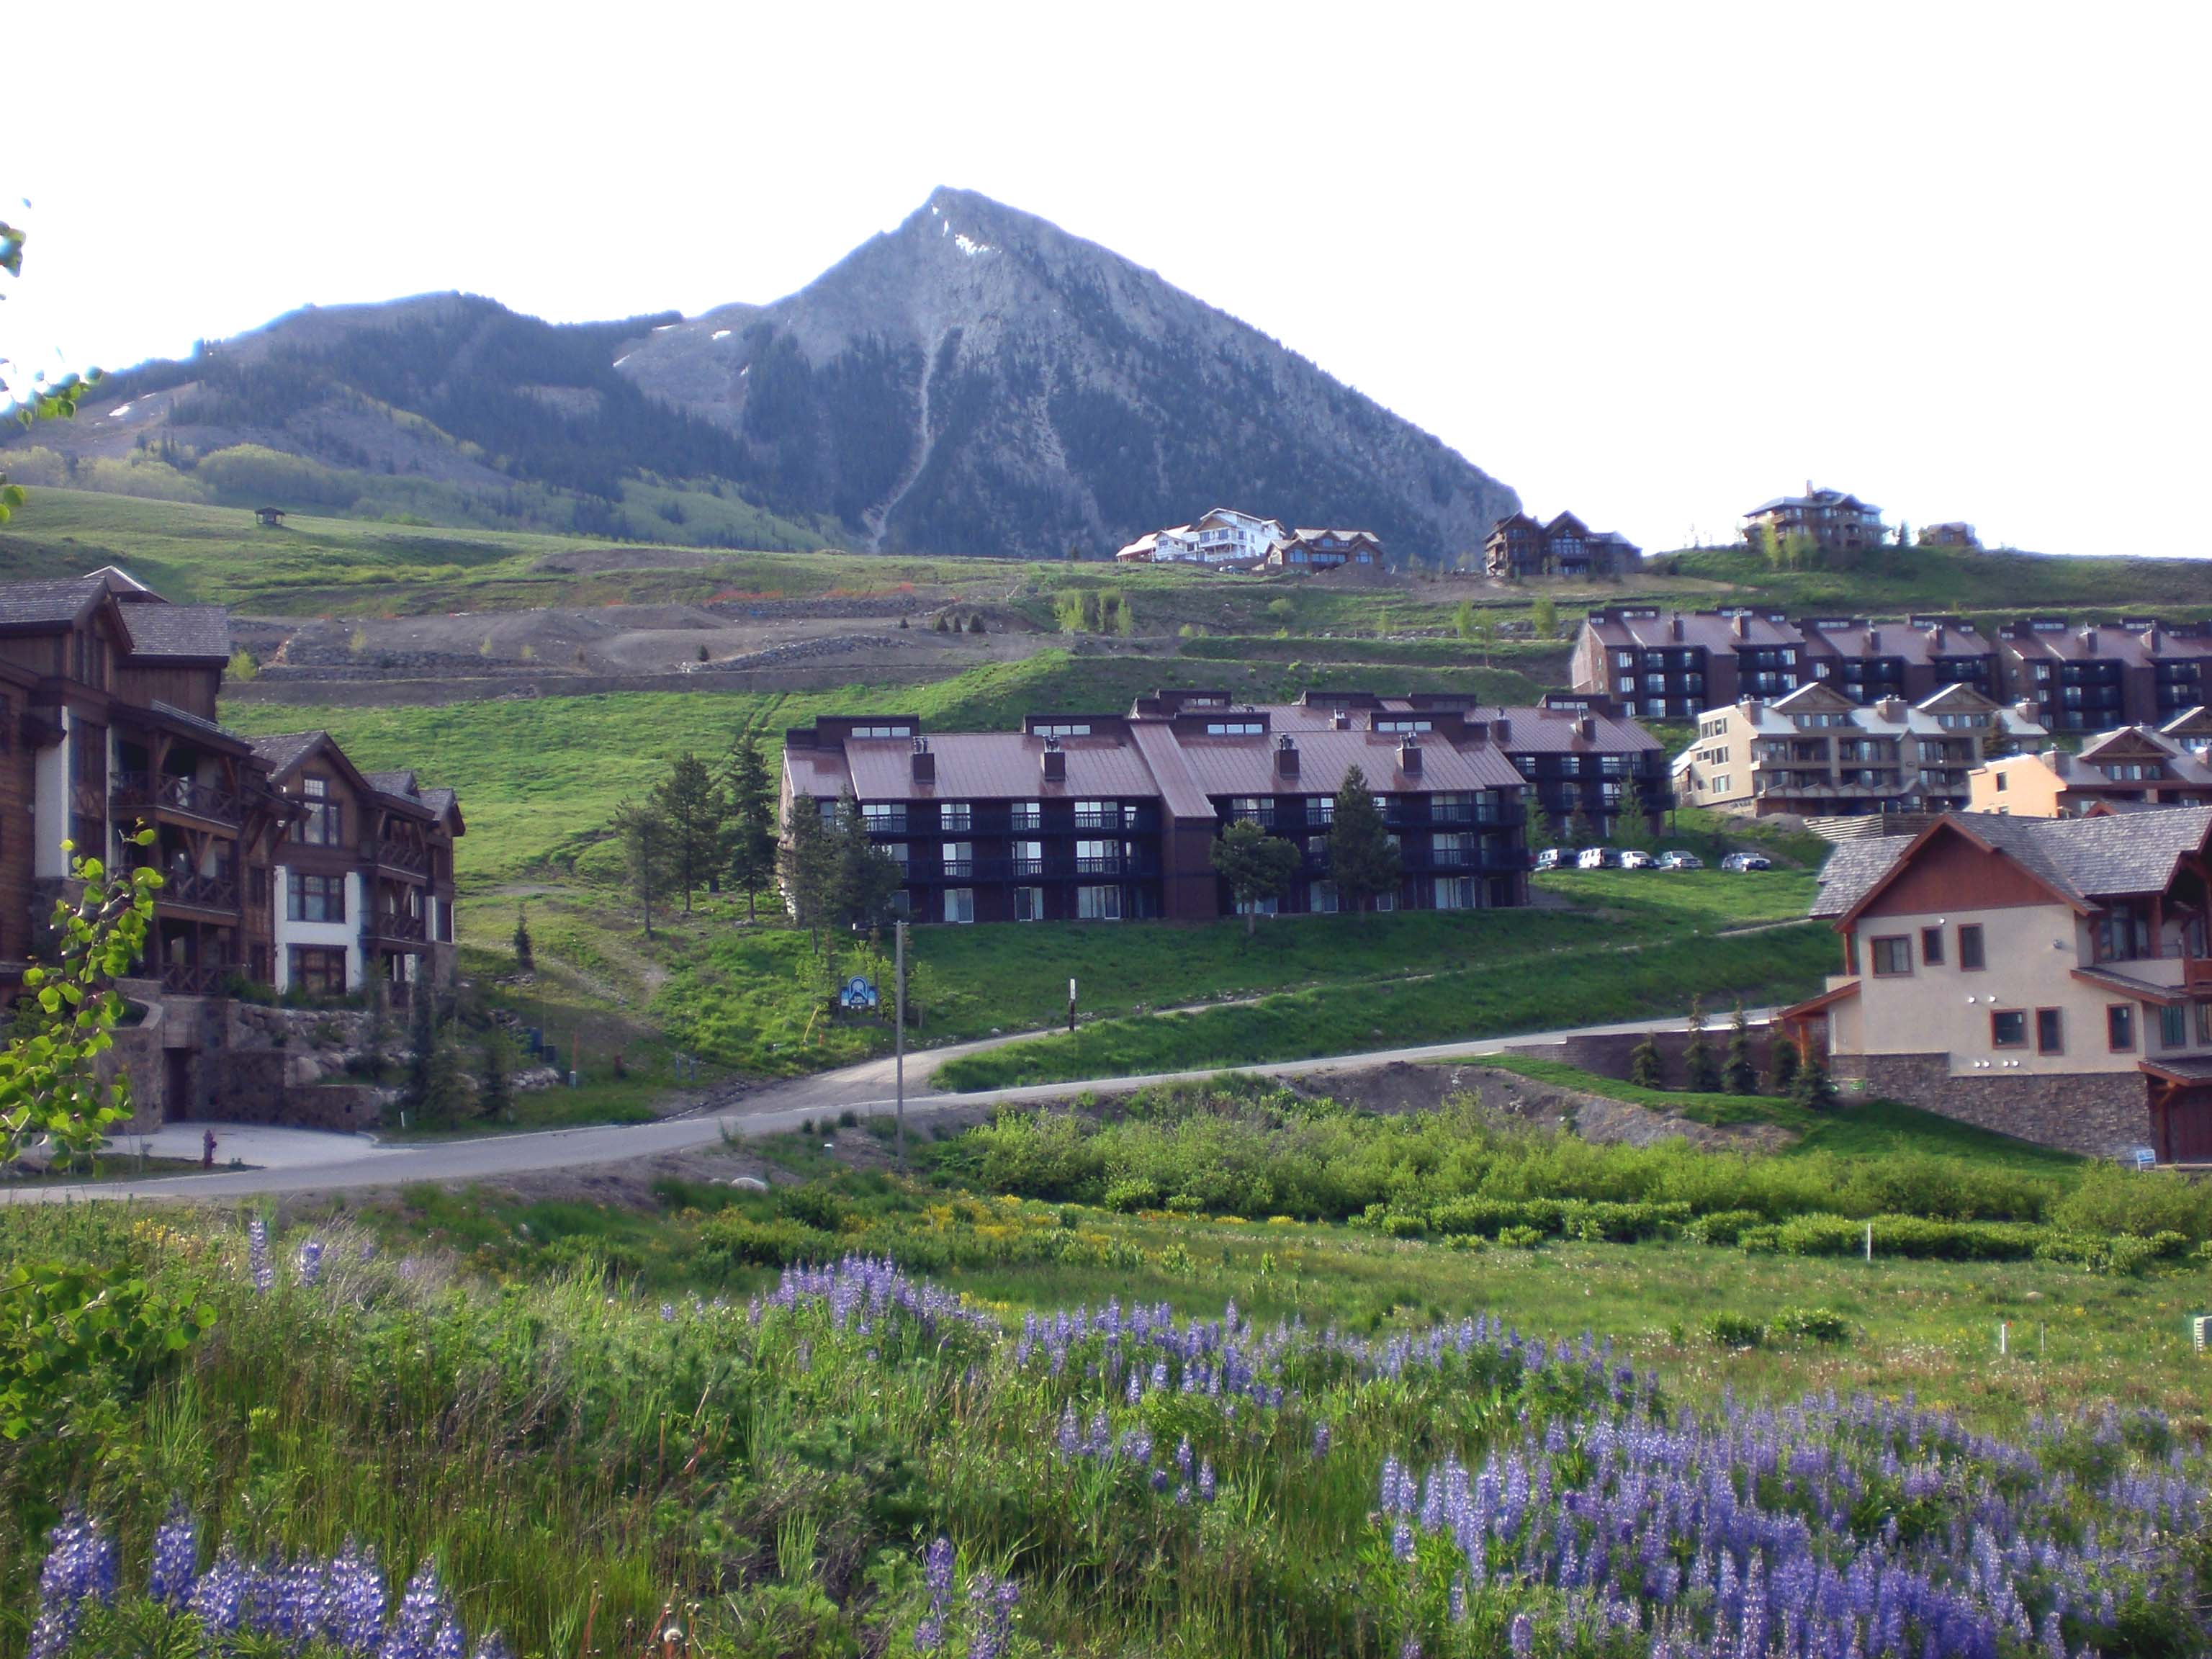 Terreno por un Venta en Bear Crossing Multi-Family Development Lot 14 Castle Road Mount Crested Butte, Colorado 81225 Estados Unidos